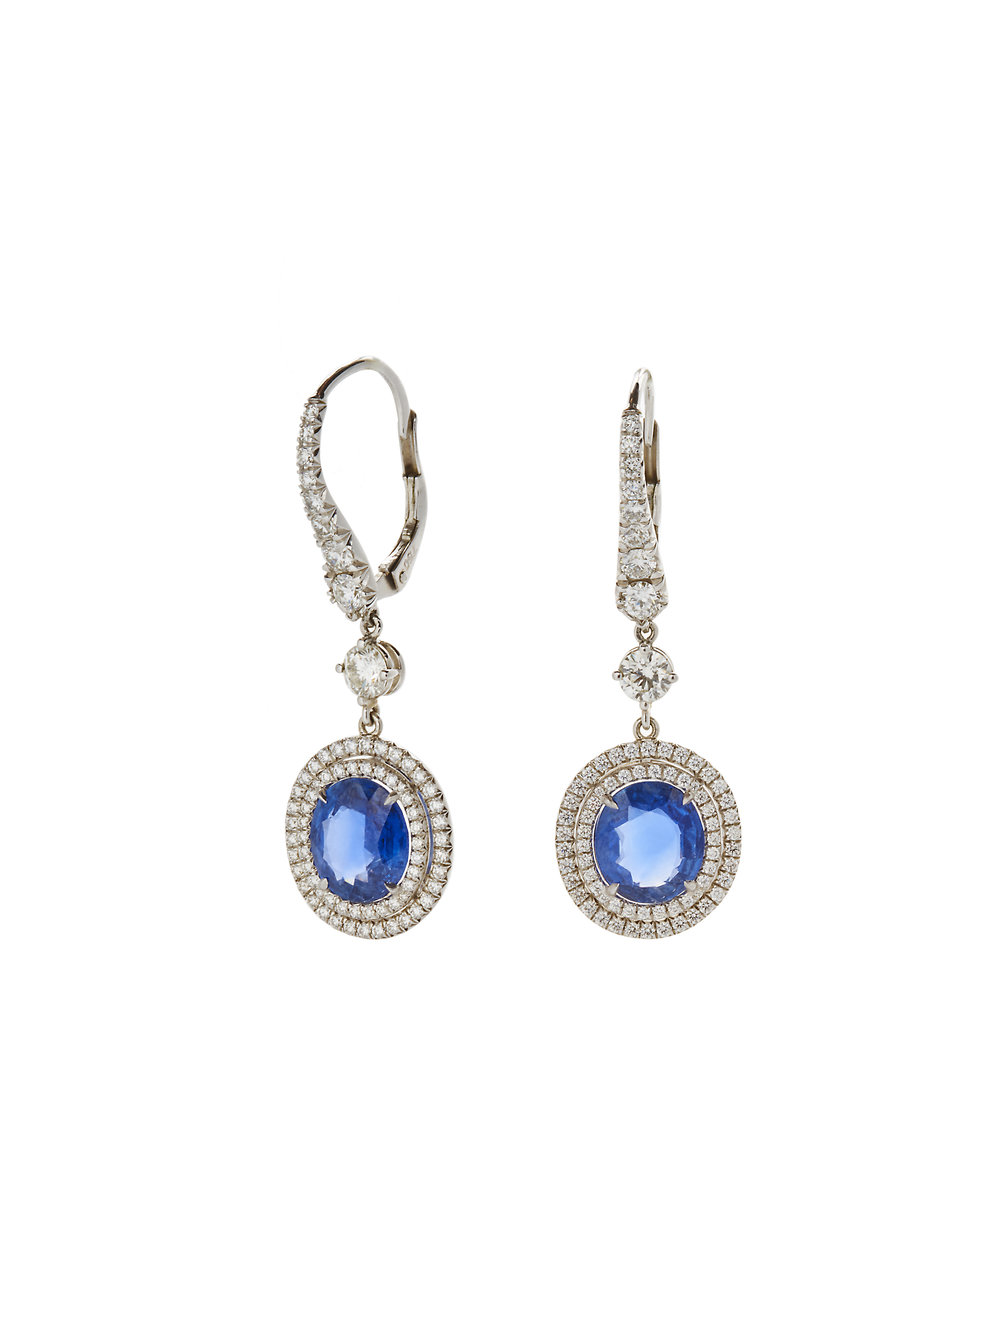 GUINEVERE EARRINGS    18 K GOLD 1.63 CT OF DIAMONDS 6.5 CT OF NATURAL SAPPHIRE      Contact for inquiry